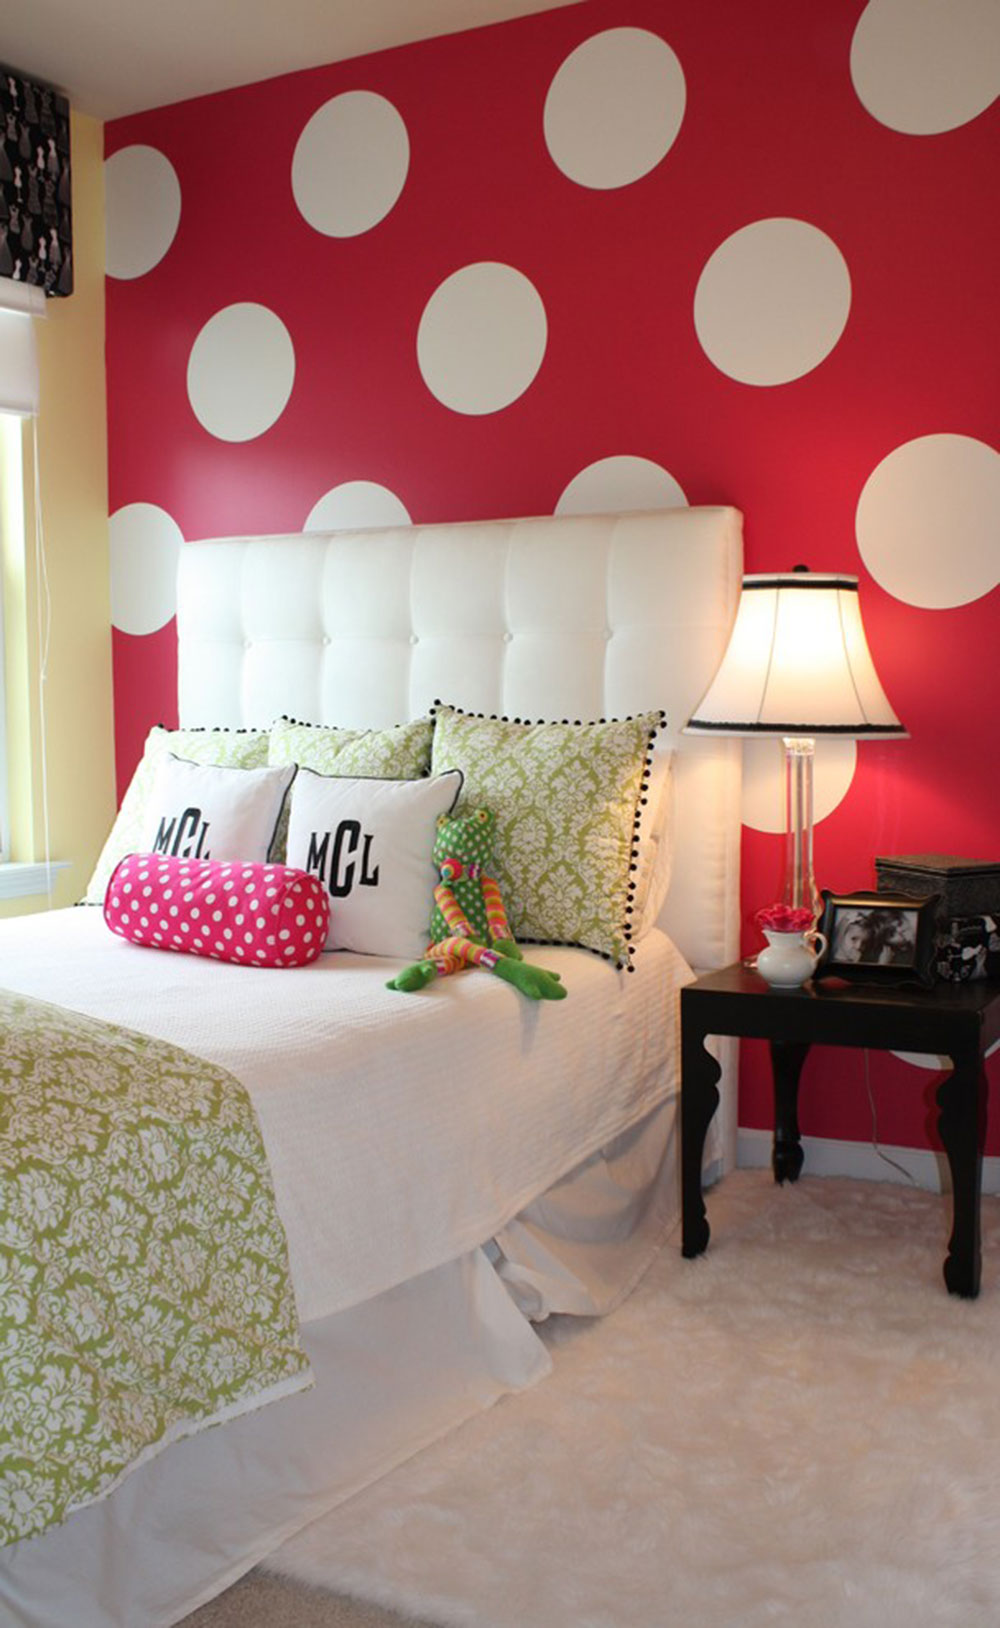 Cool things for your room to try now (awesome decorating ideas)